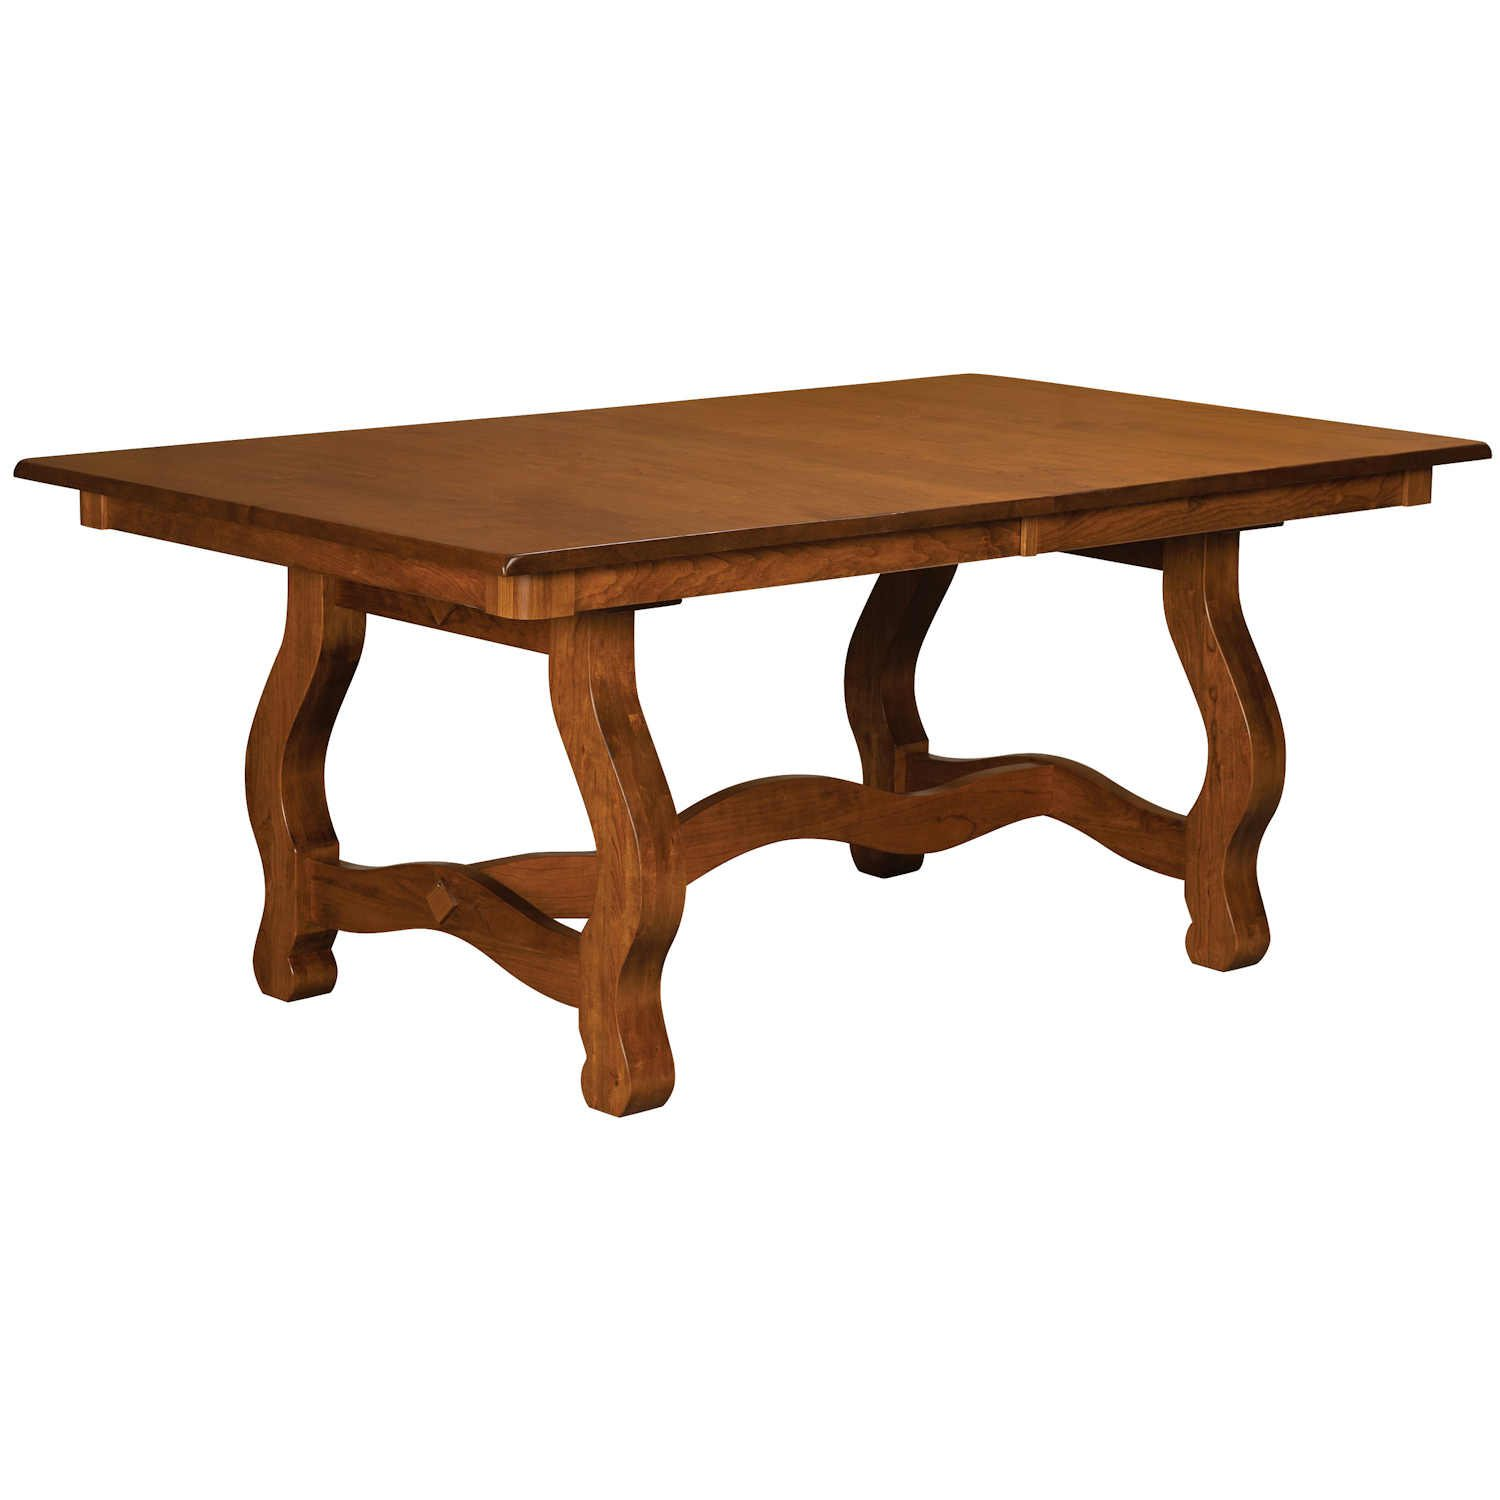 Carolina Dining Room Set T-331 Carolina Trestle Table